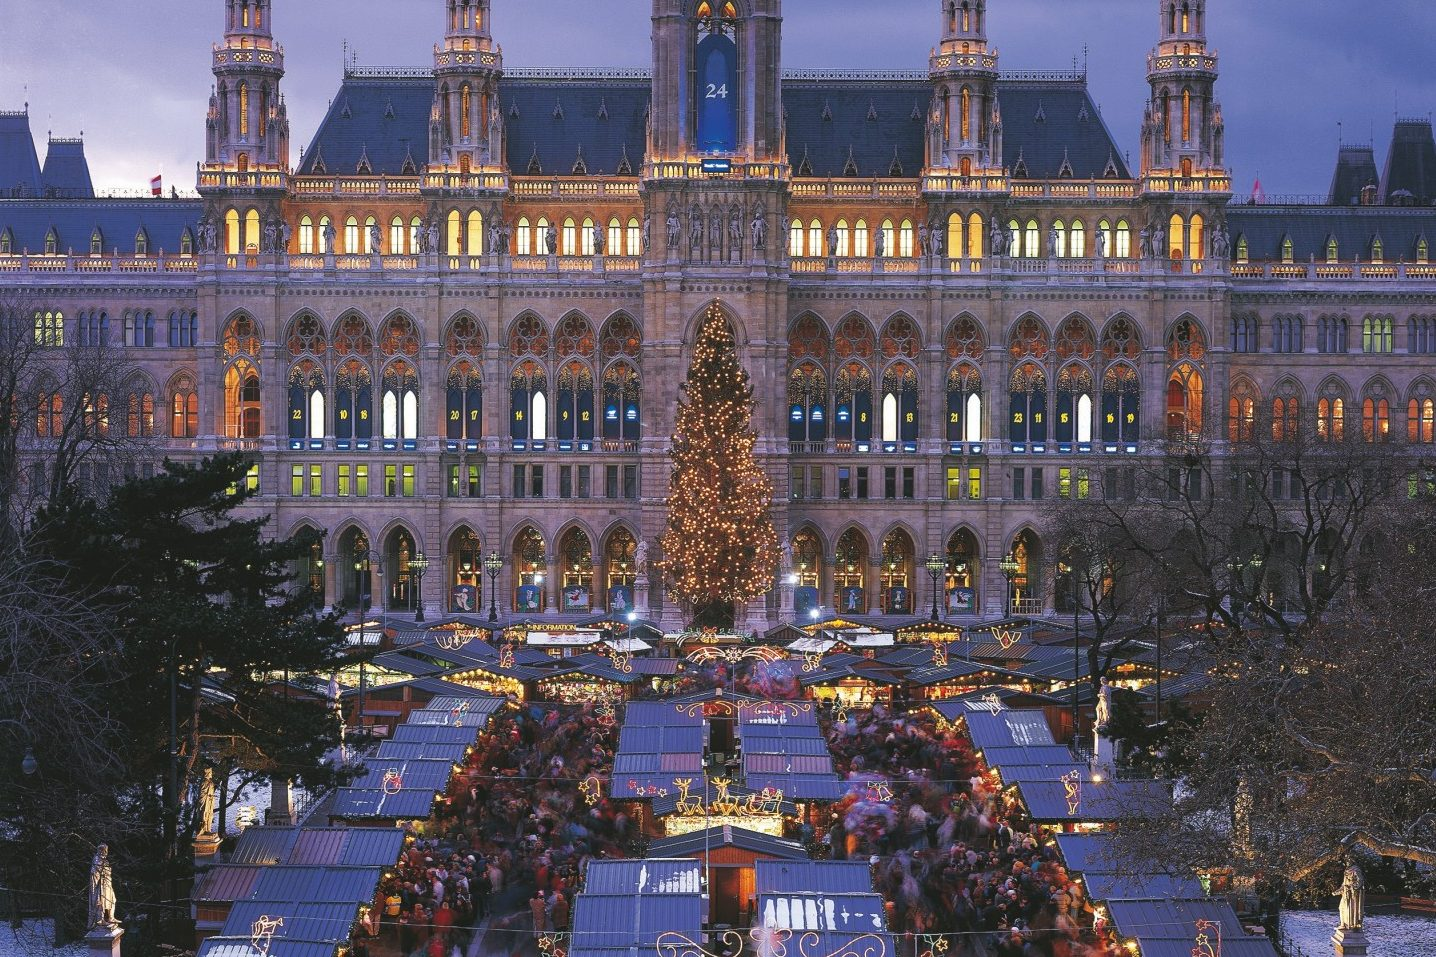 Christmas In Austria 2019.Austria Christmas Market In Vienna And Town Hall Square